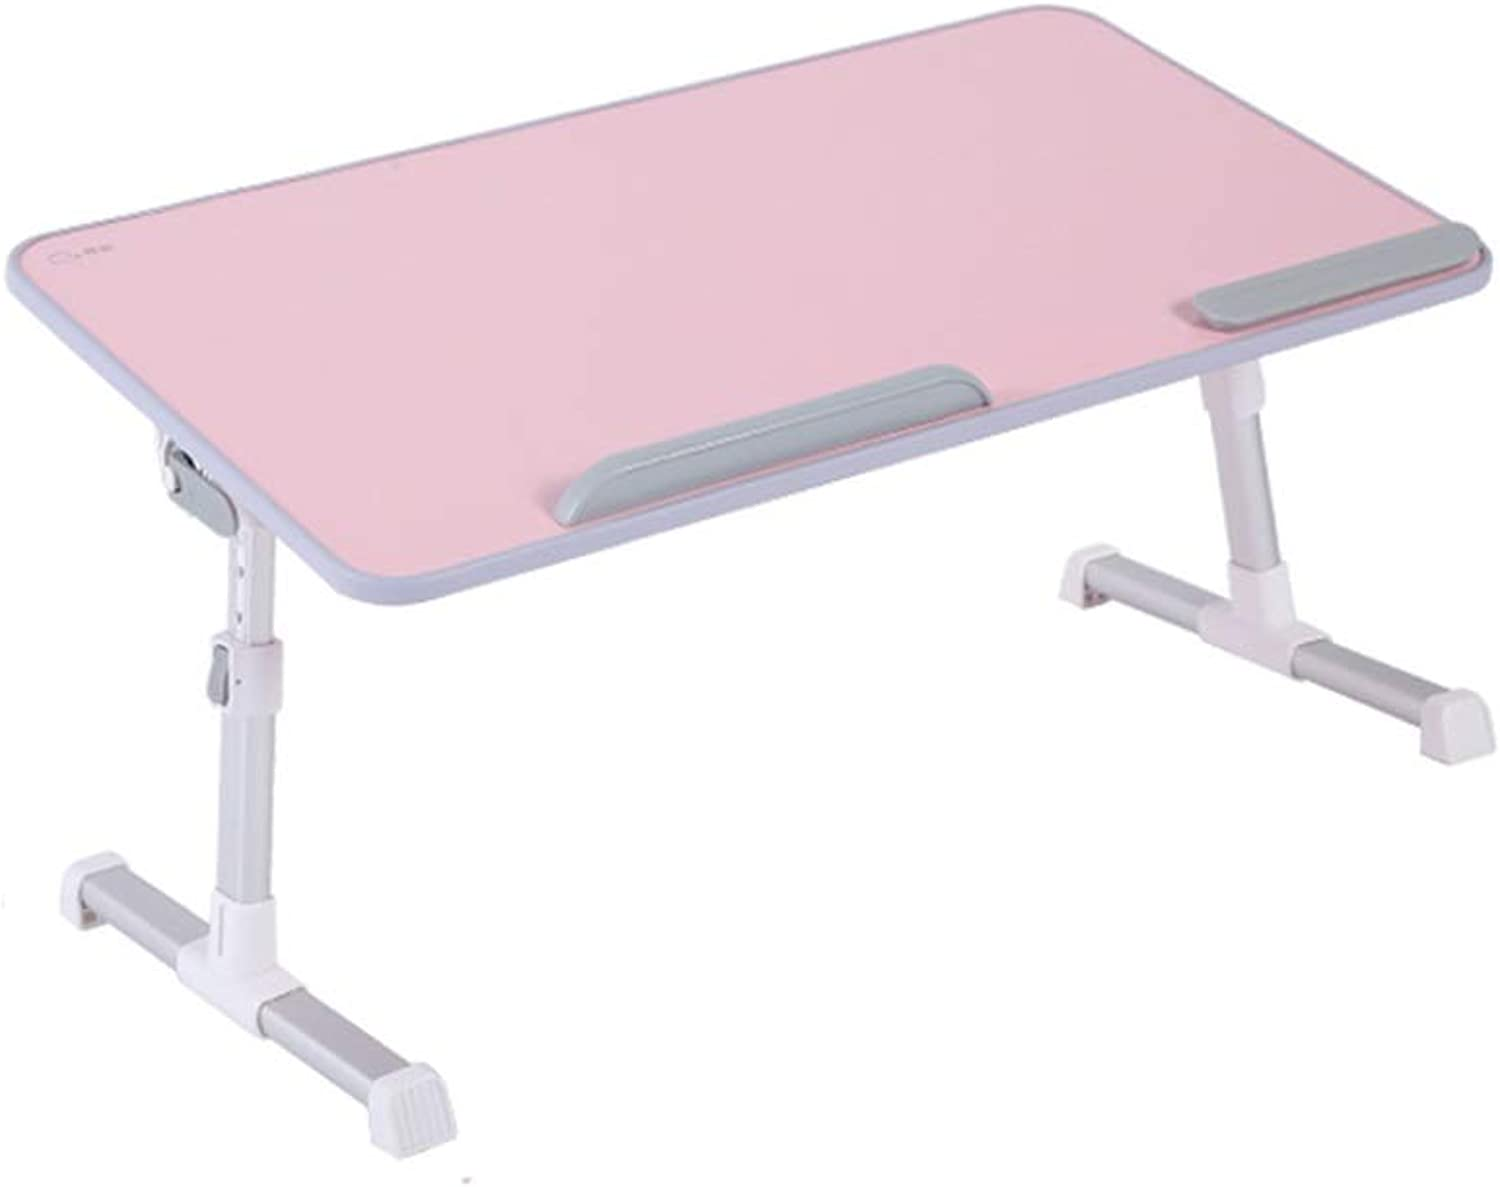 Desk, Bed Desk Can Be Raised and Lowered, Adjustable Small Table, Lazy, Learning, Folding Computer Desk Portable Table (color   A)